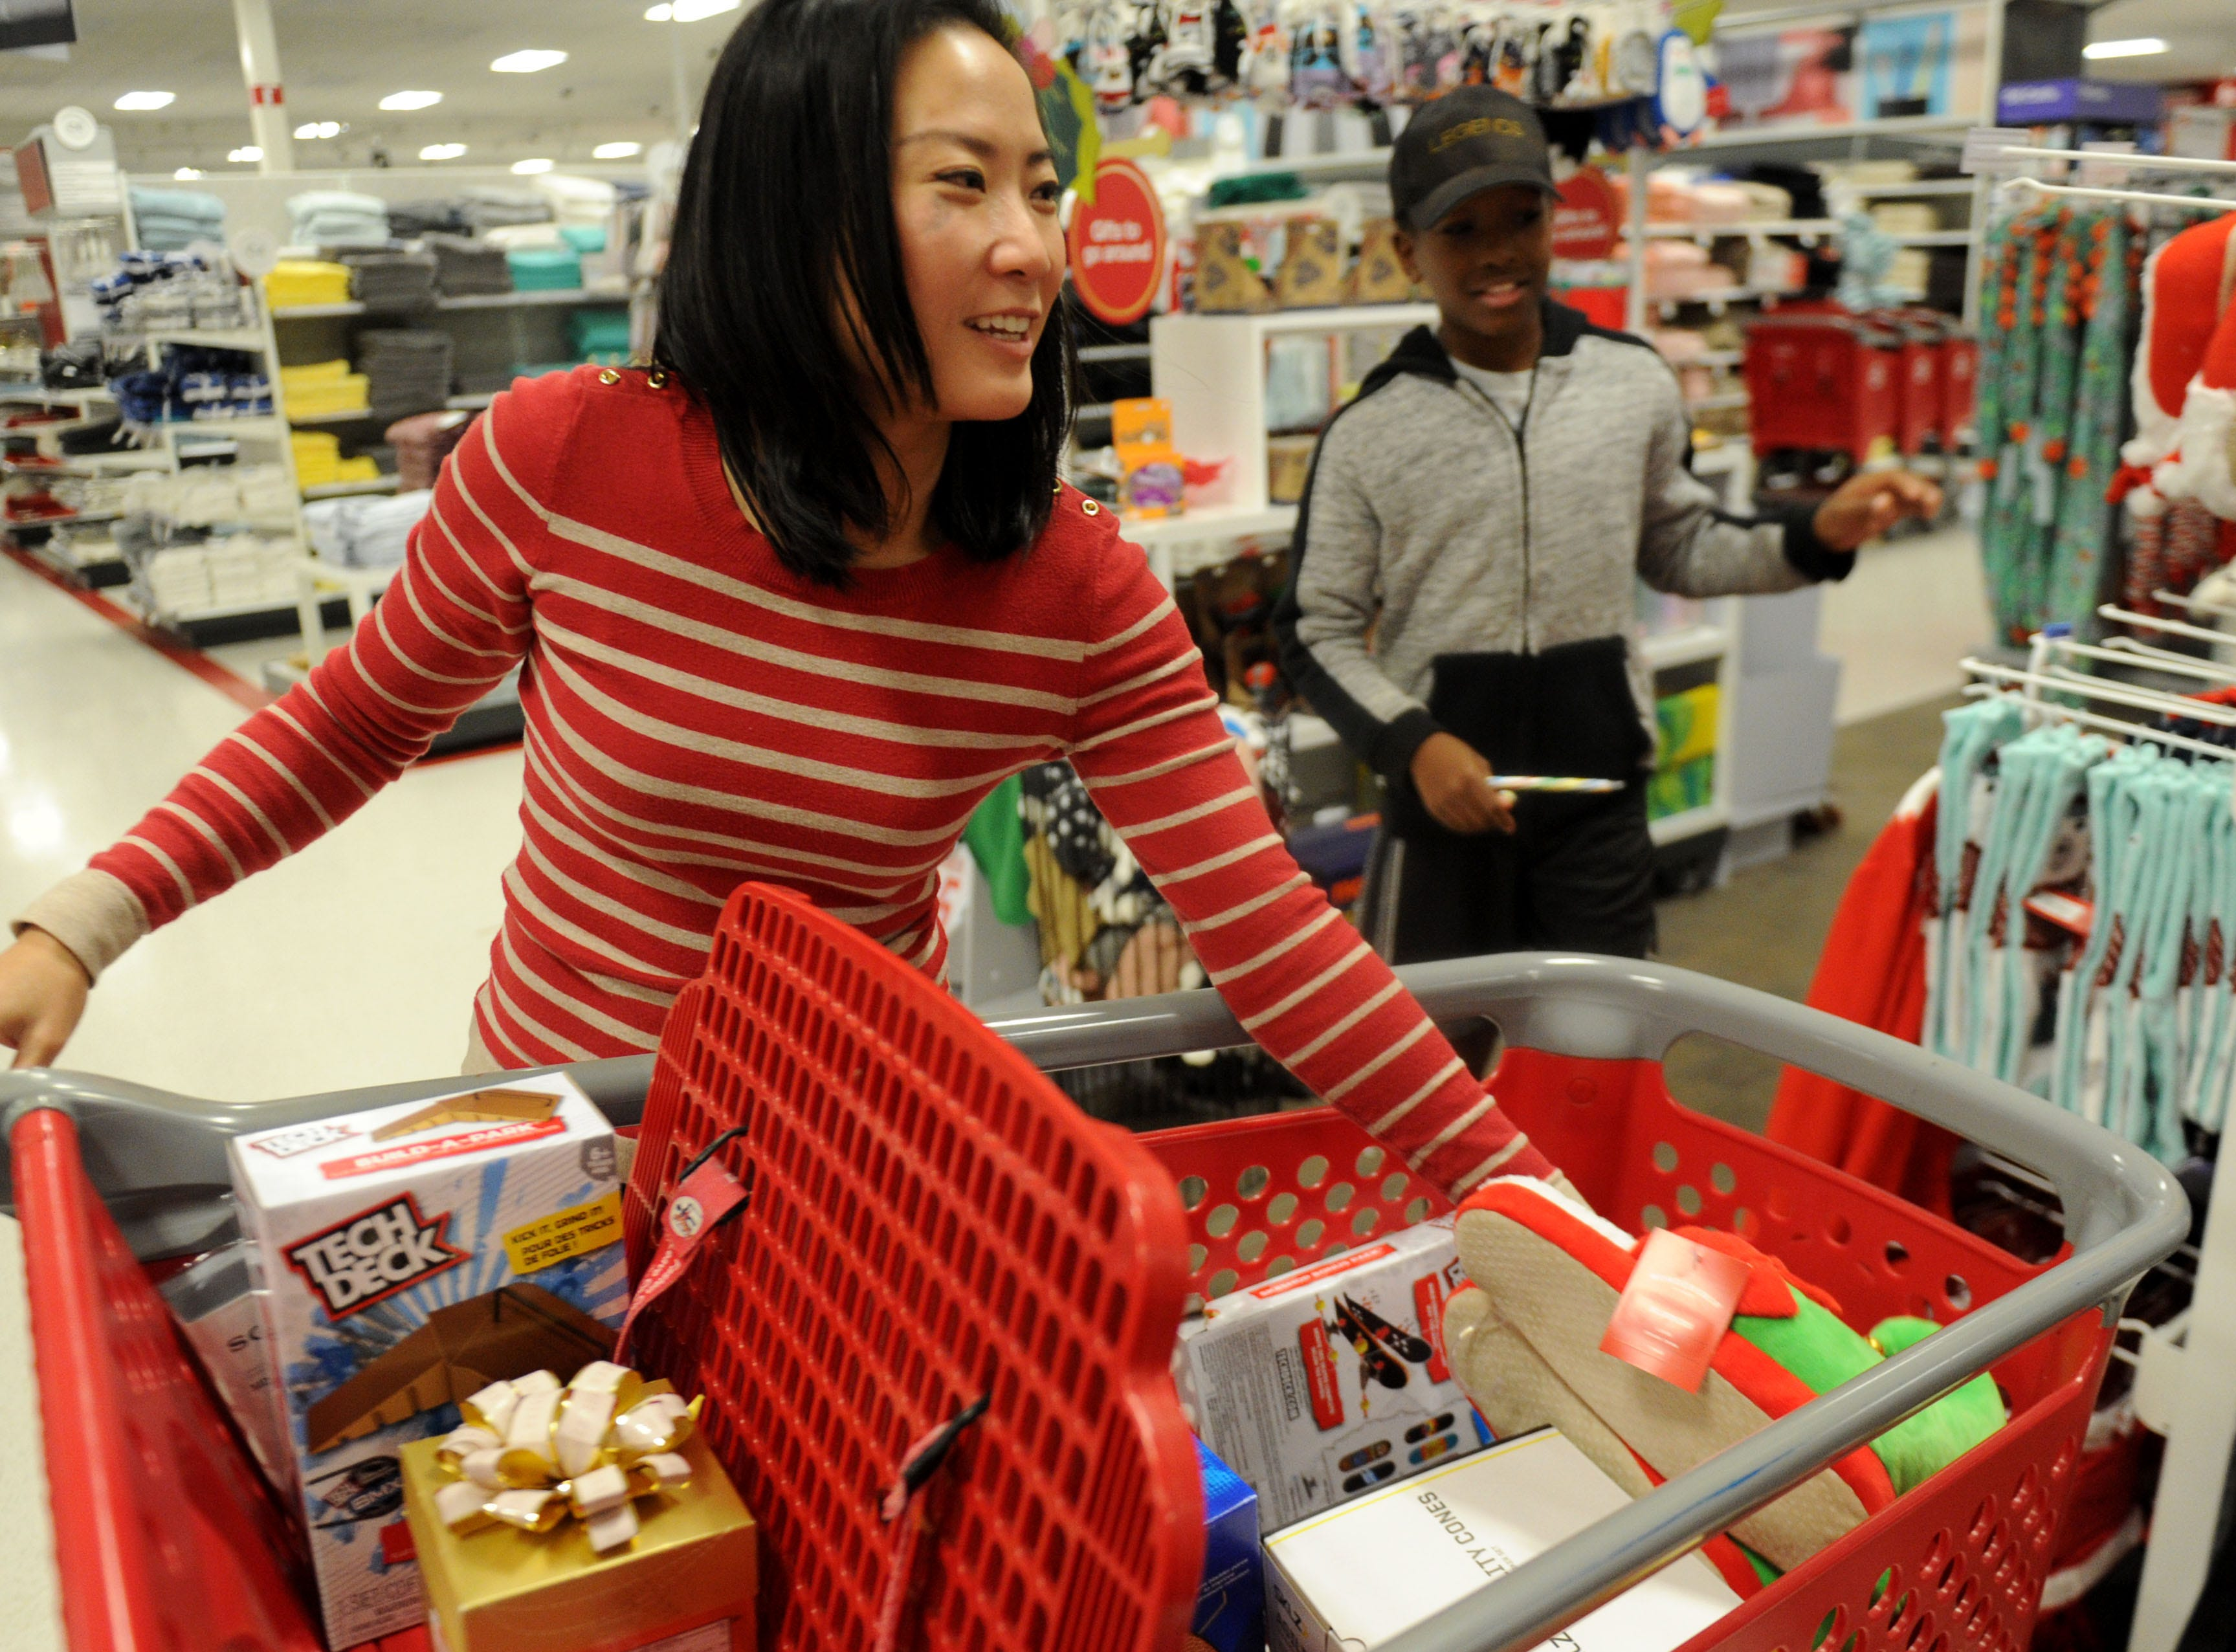 Kristina Tansavatdi of the Rotary Club of Westlake Village helps Samuel Opoku select a gift for his mom. The club hosted a shopping spree at Target for 36 members of the Boys & Girls Club. The children, each with $110 to spend, were paired with 36 volunteers, and they also got two $10 gift cards so they could buy gifts for someone else.